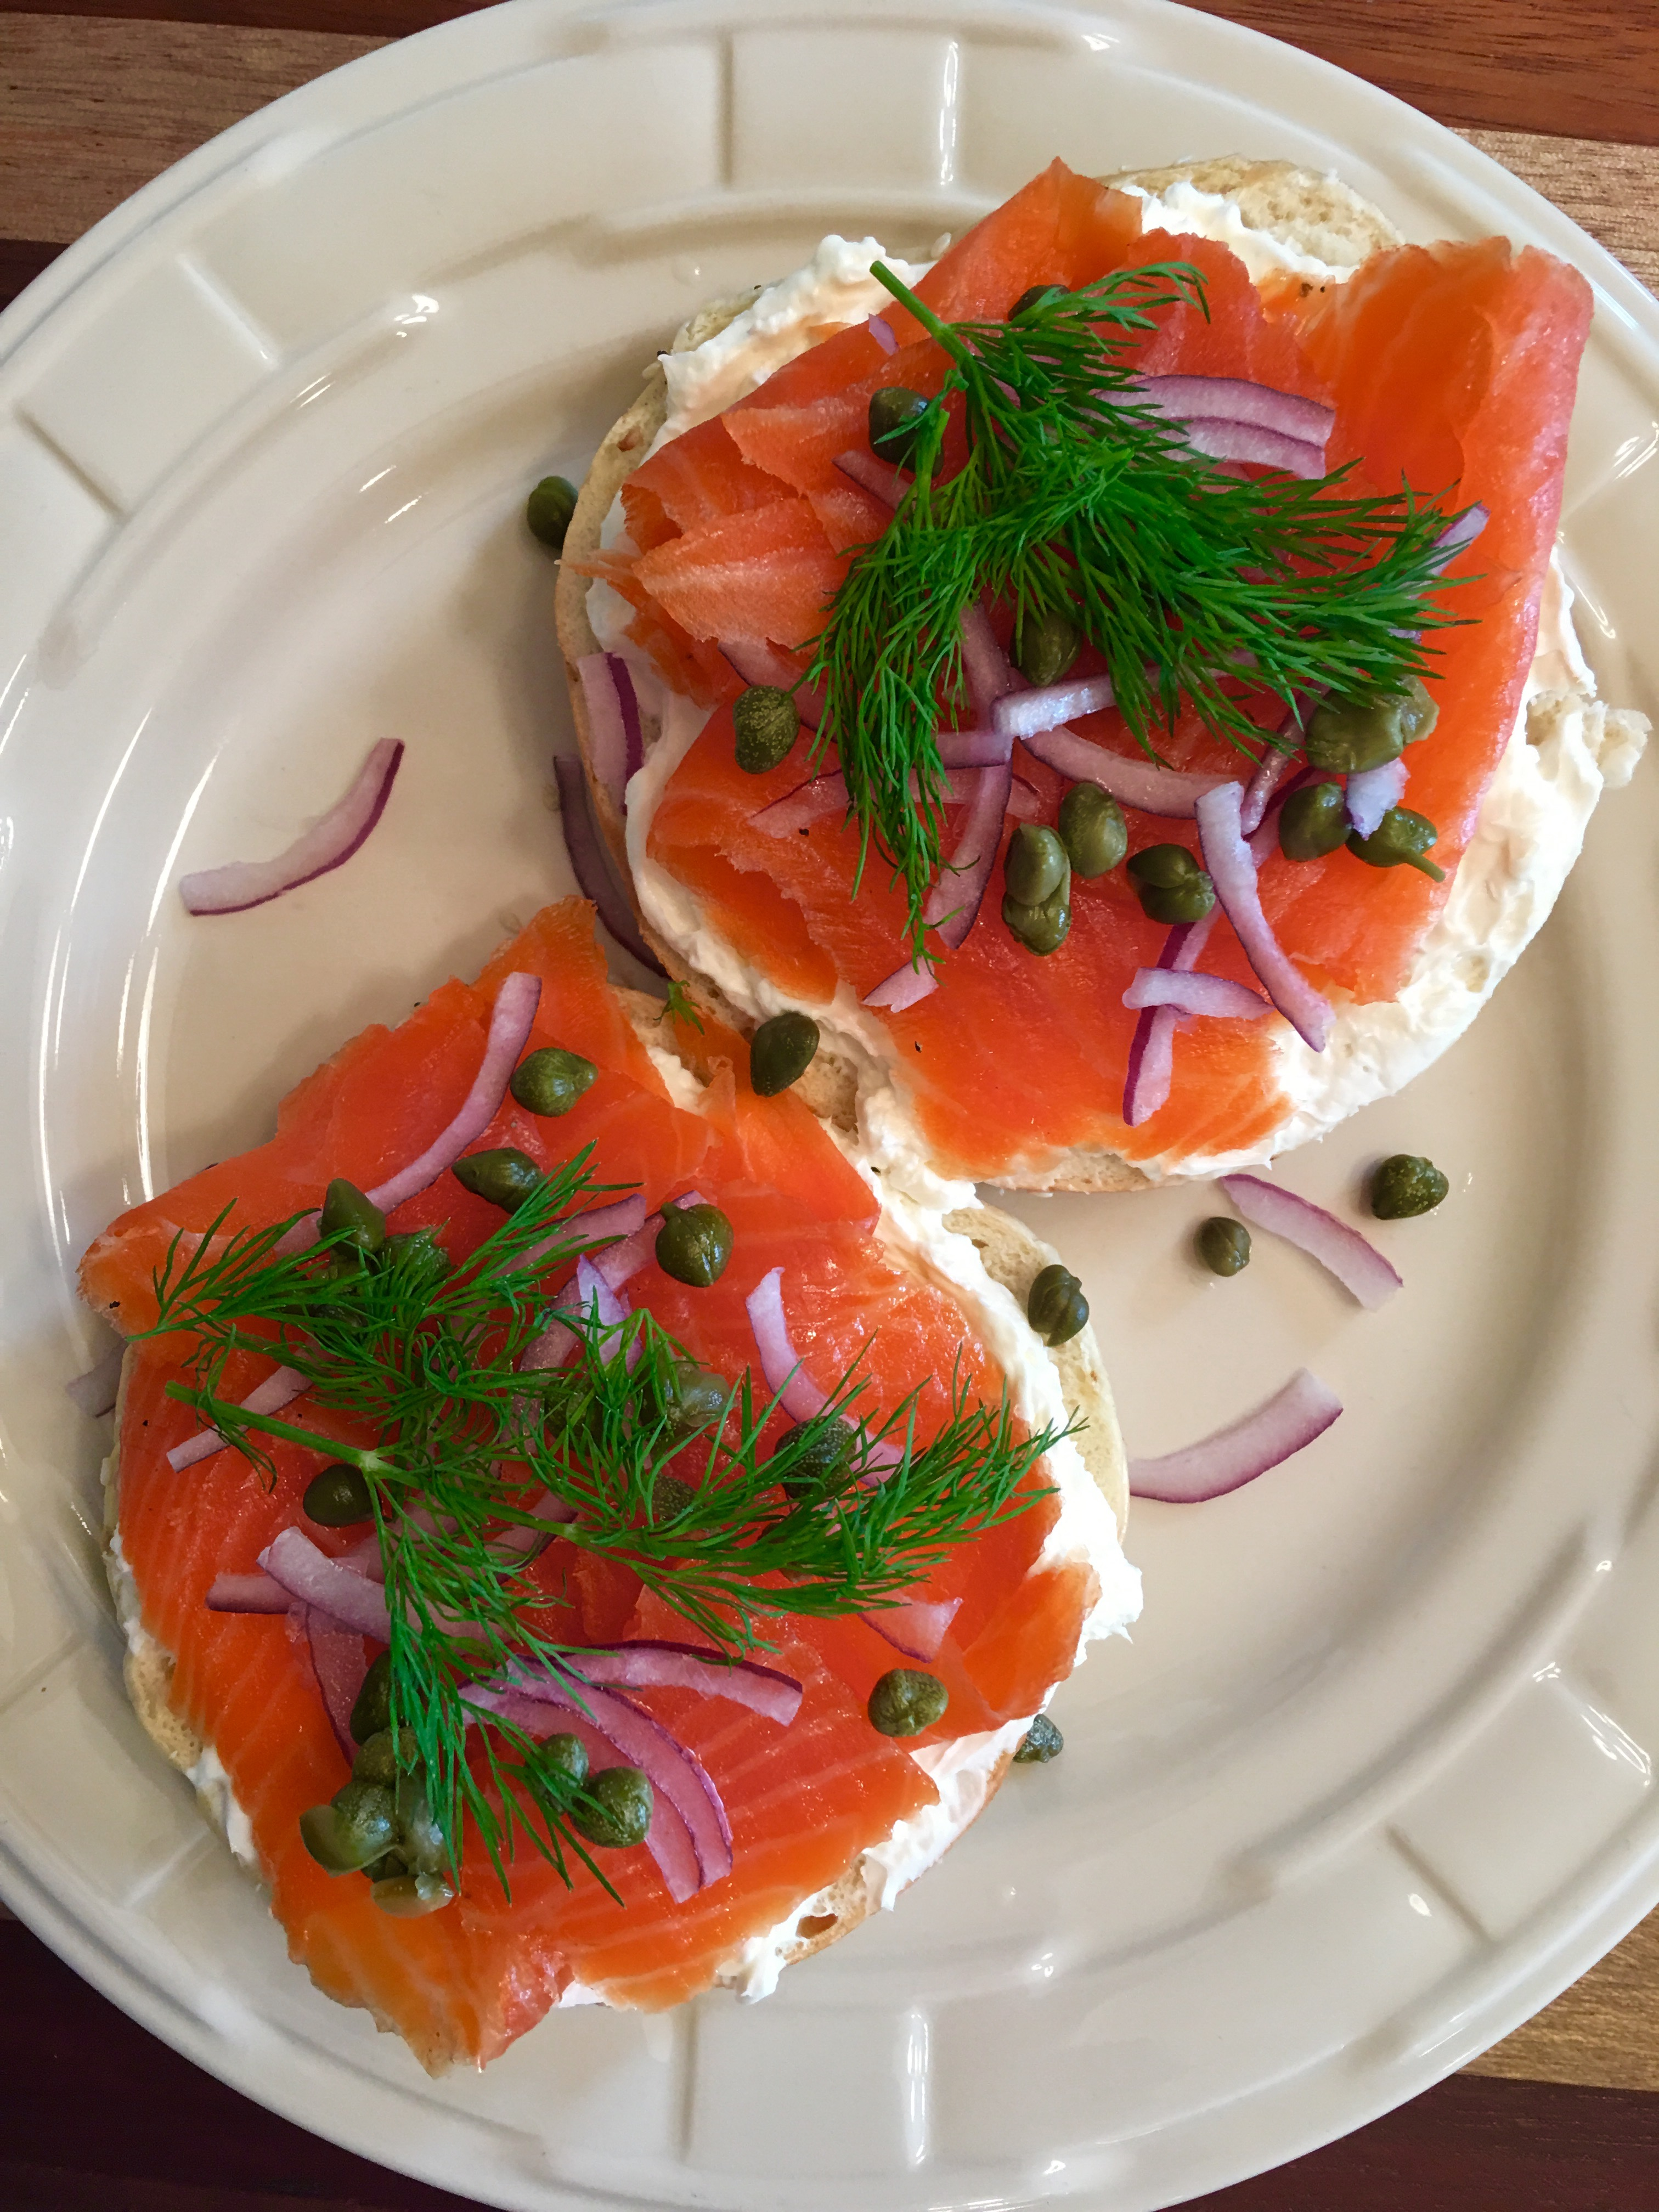 Cold smoked salmon or steelhead trout knife and fork living for Smoked fish near me